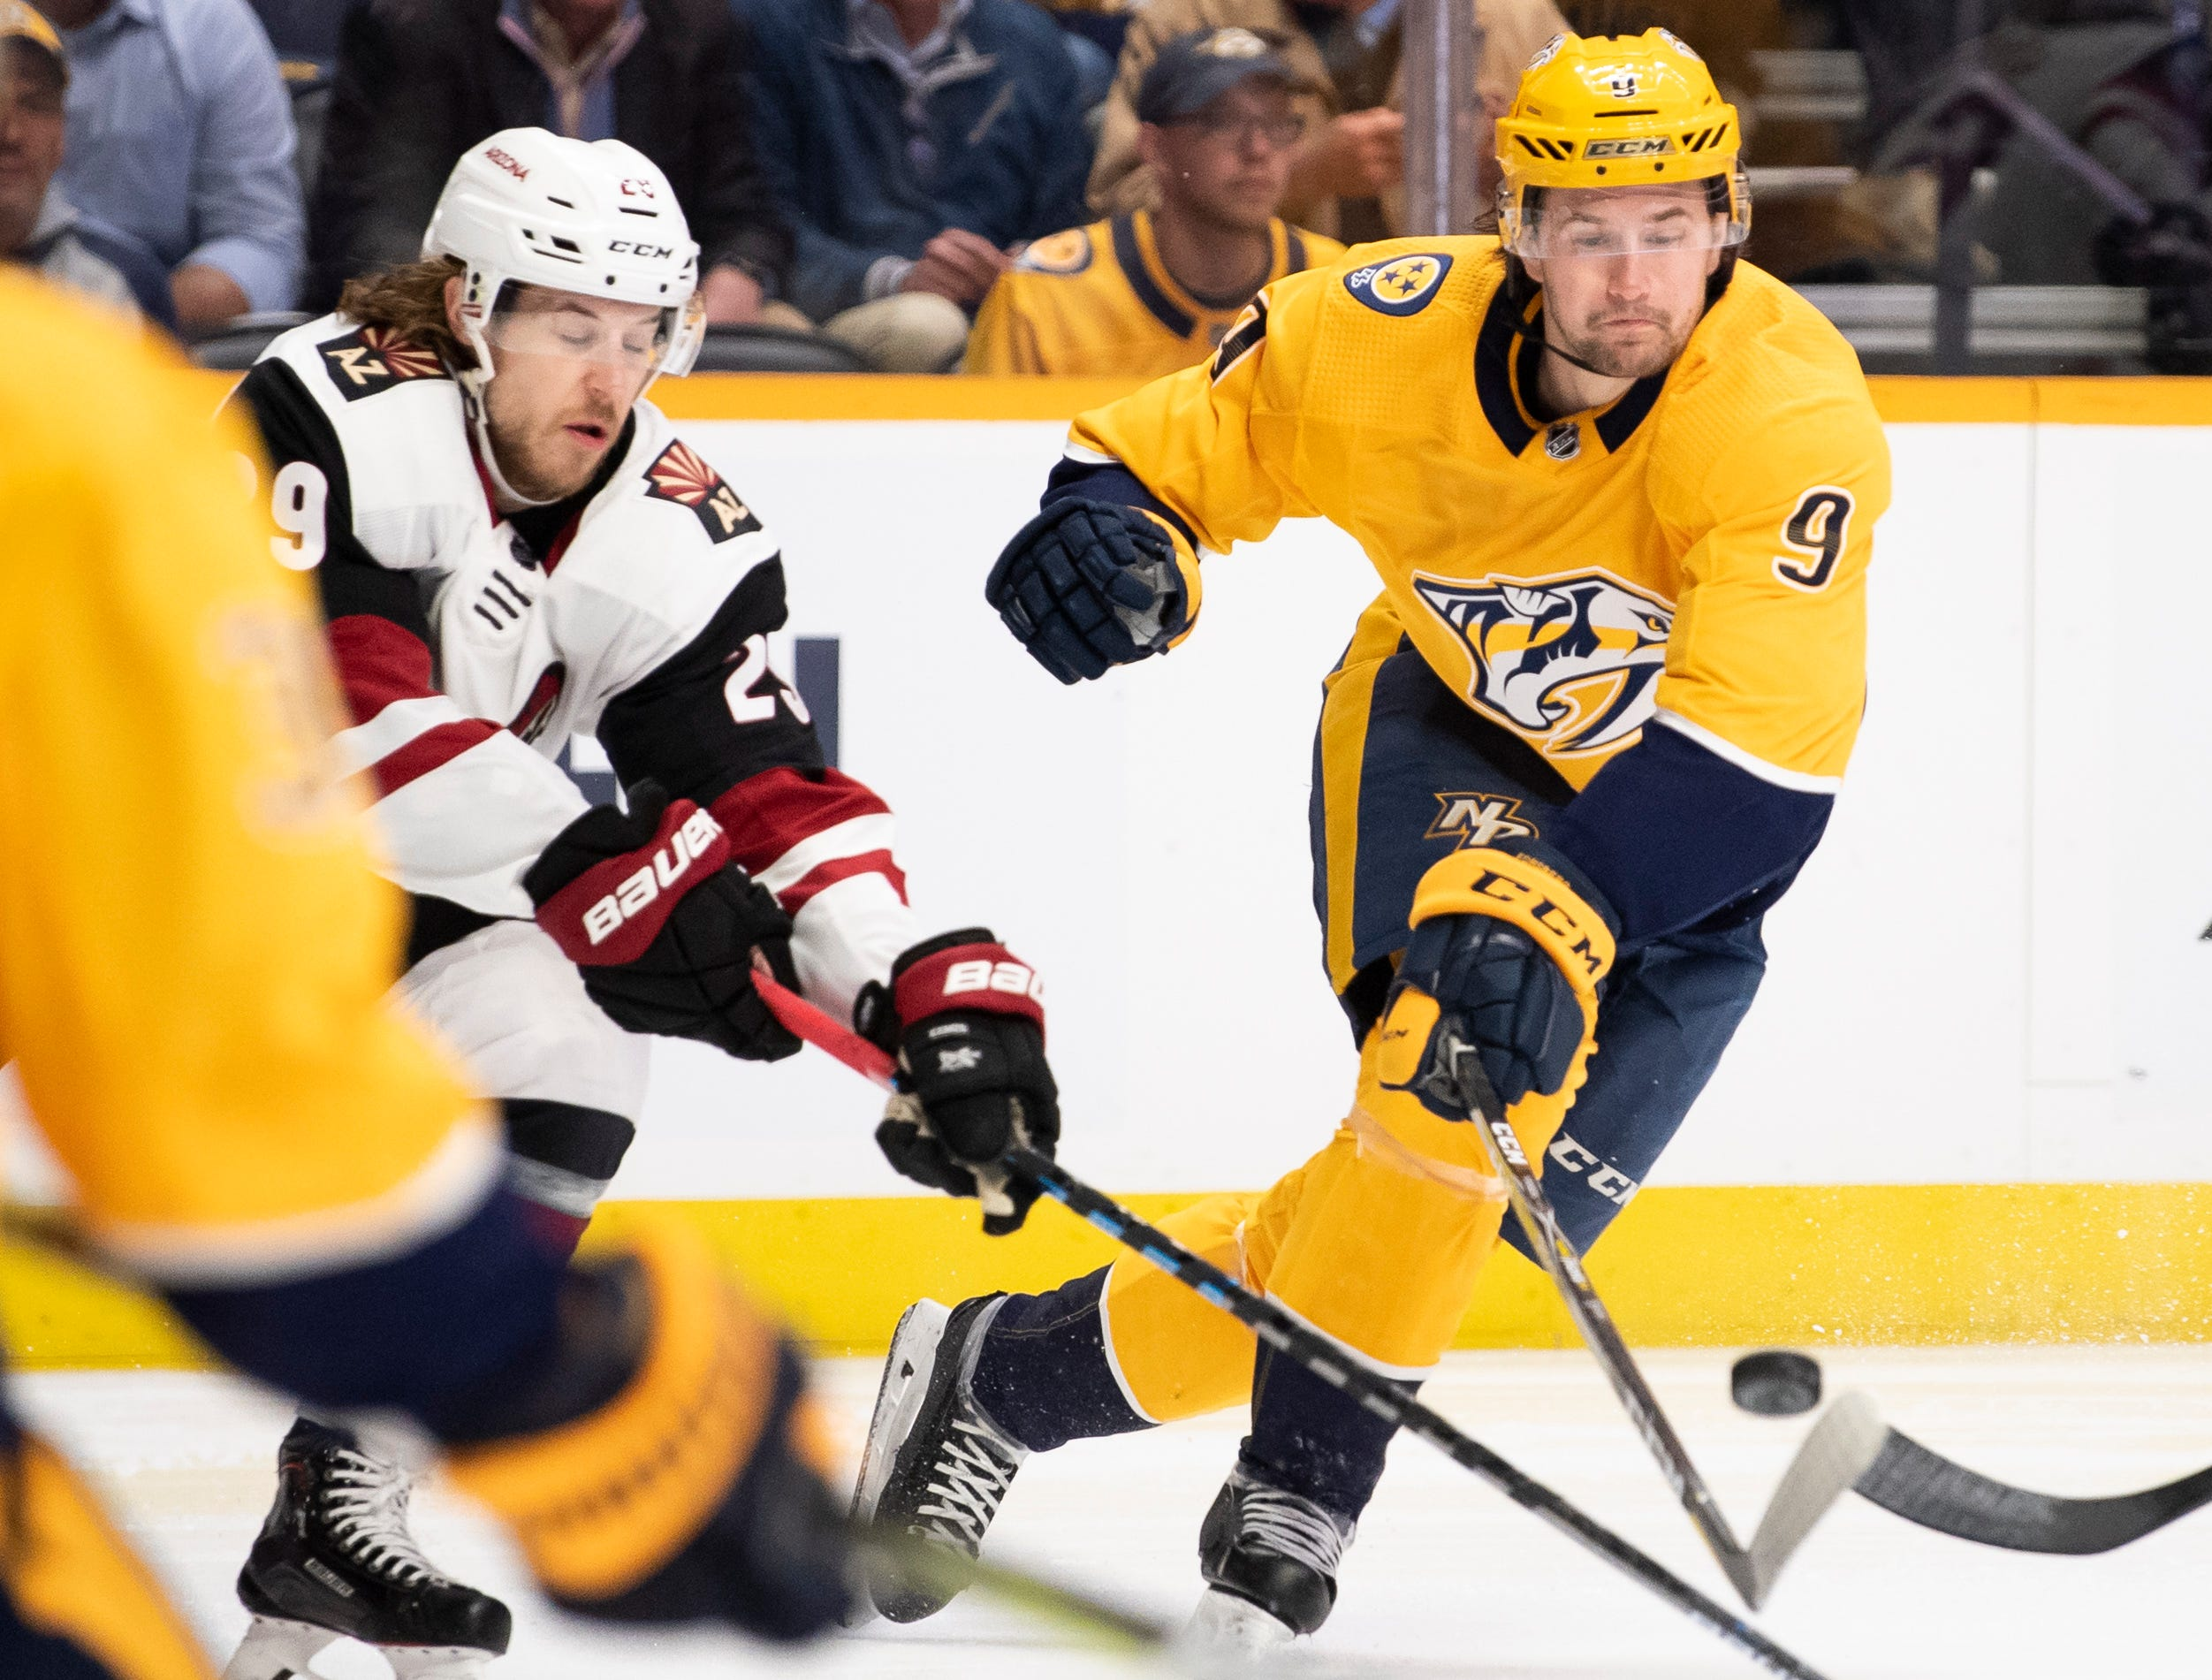 Nashville Predators left wing Filip Forsberg (9) passes past Arizona Coyotes right wing Mario Kempe (29) during the first period at Bridgestone Arena in Nashville, Tenn., Tuesday, Feb. 5, 2019.